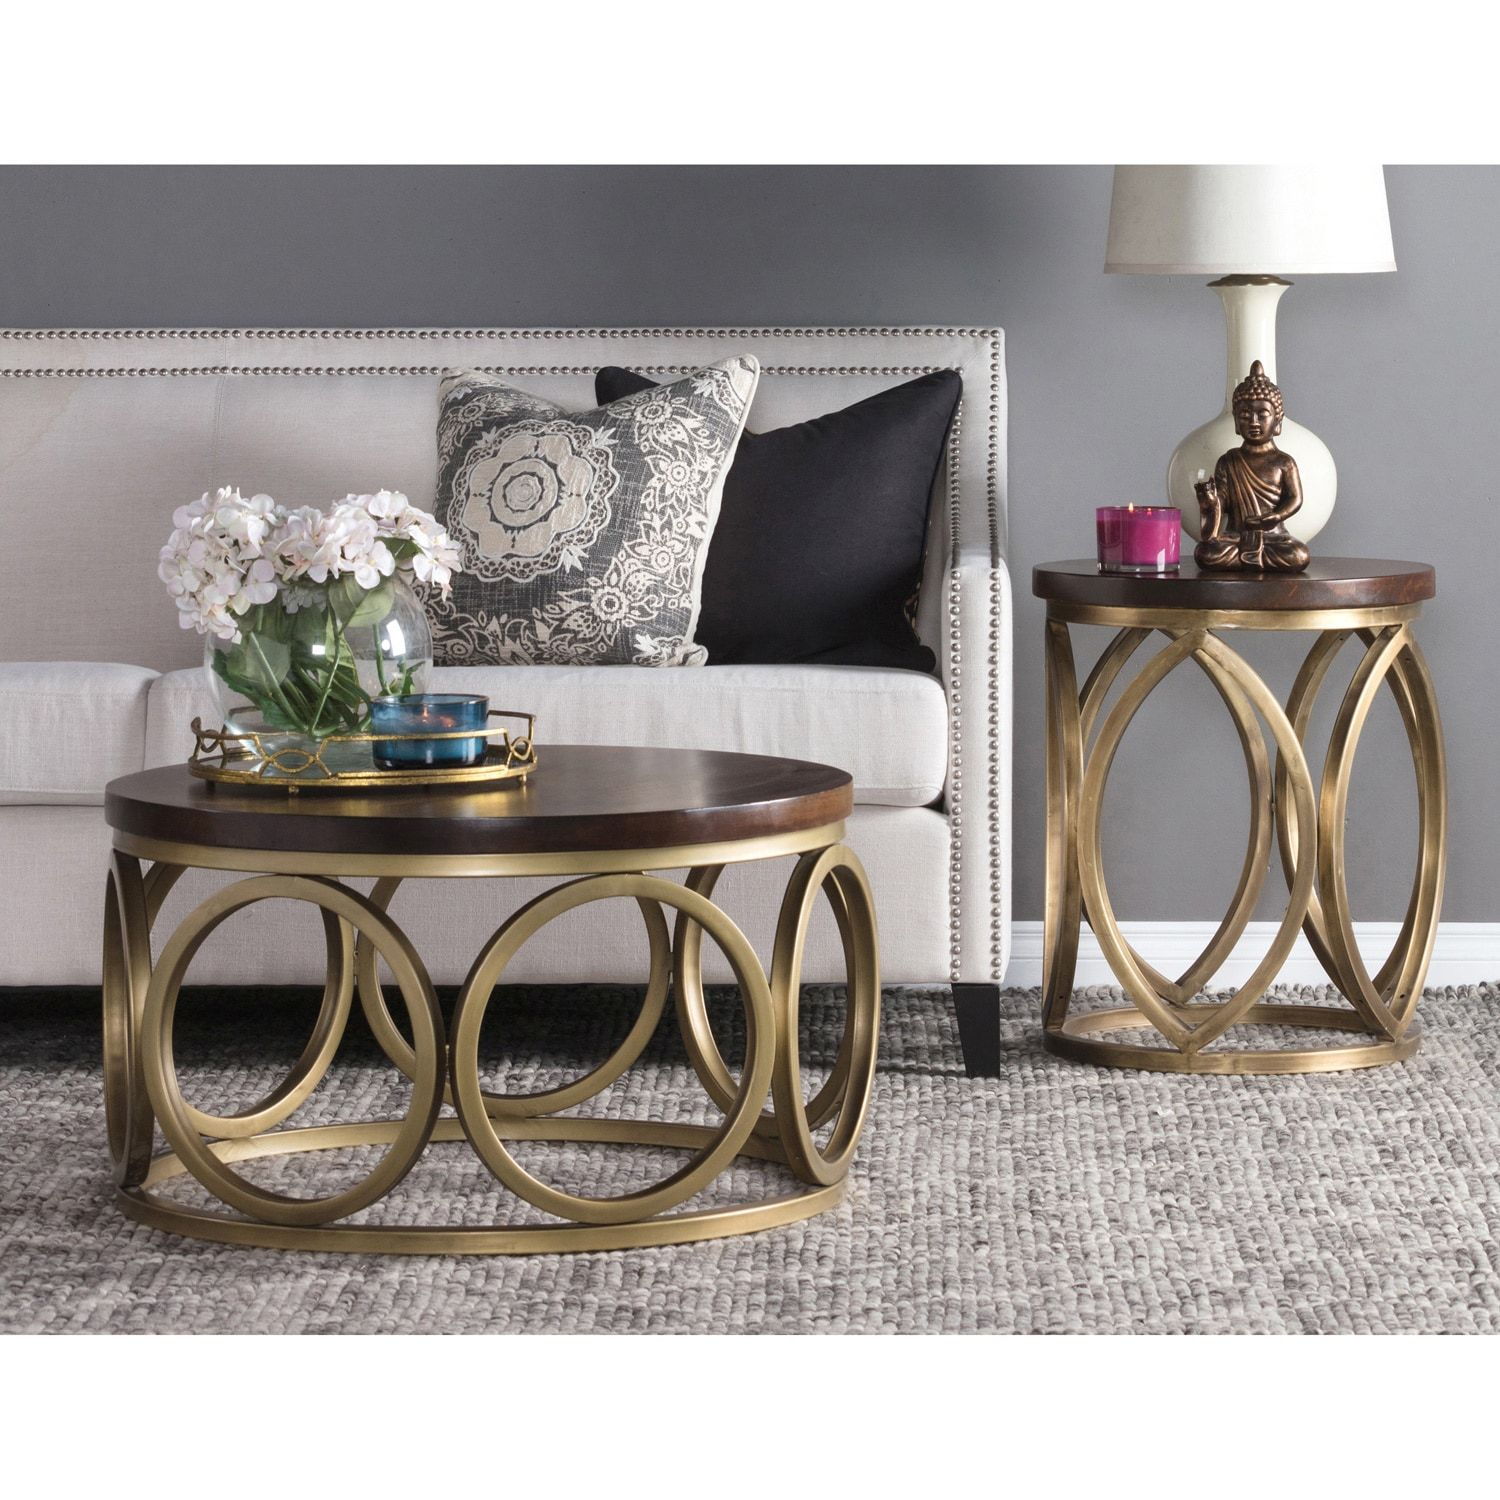 Gemma 32 Inch Wood Round Coffee Table By Kosas Home Coffee Table